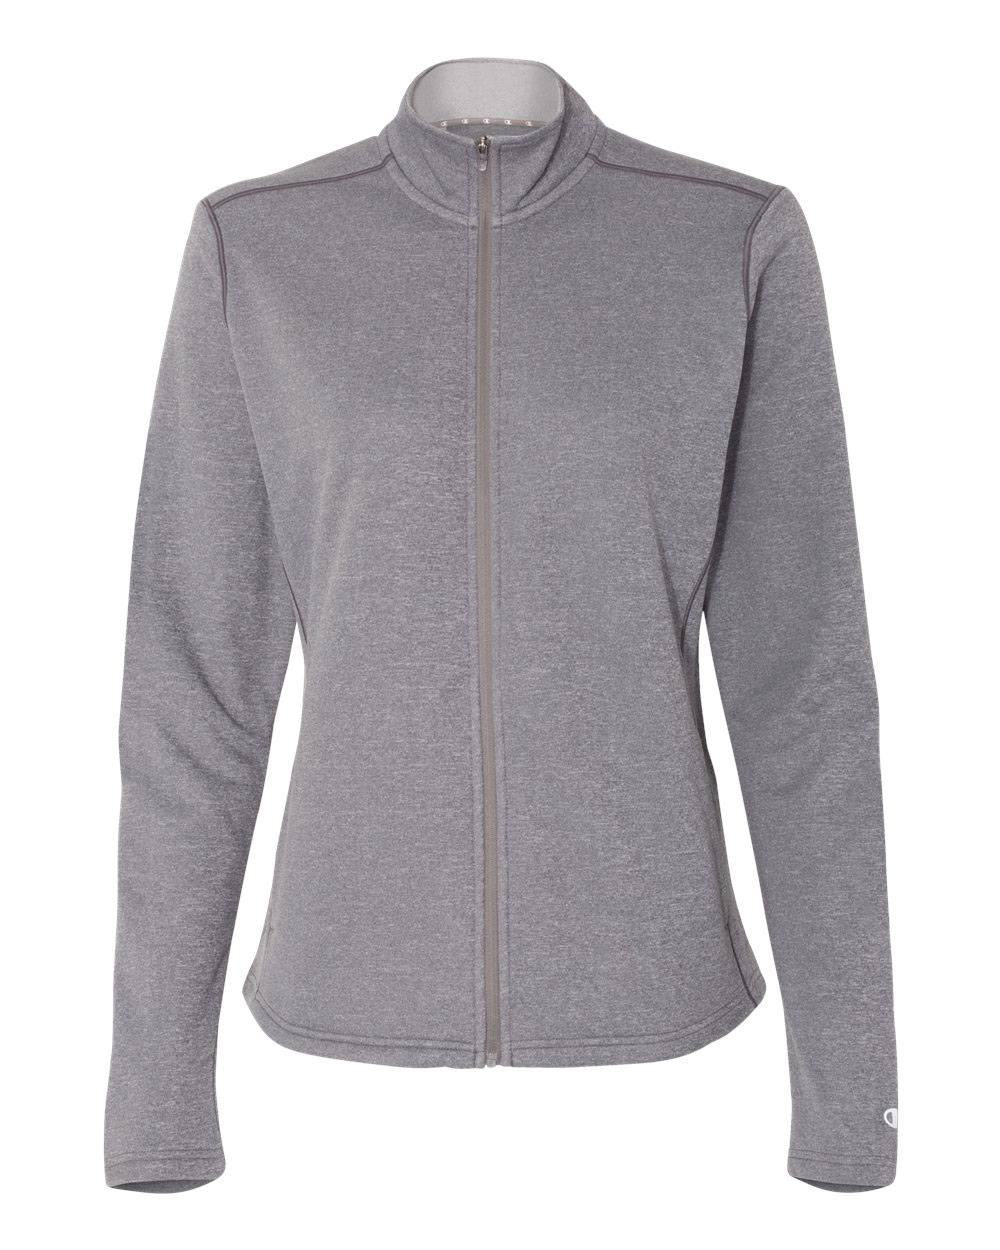 Champion Ladies 5.4 oz Performance Colorblock Full-Zip Jacket